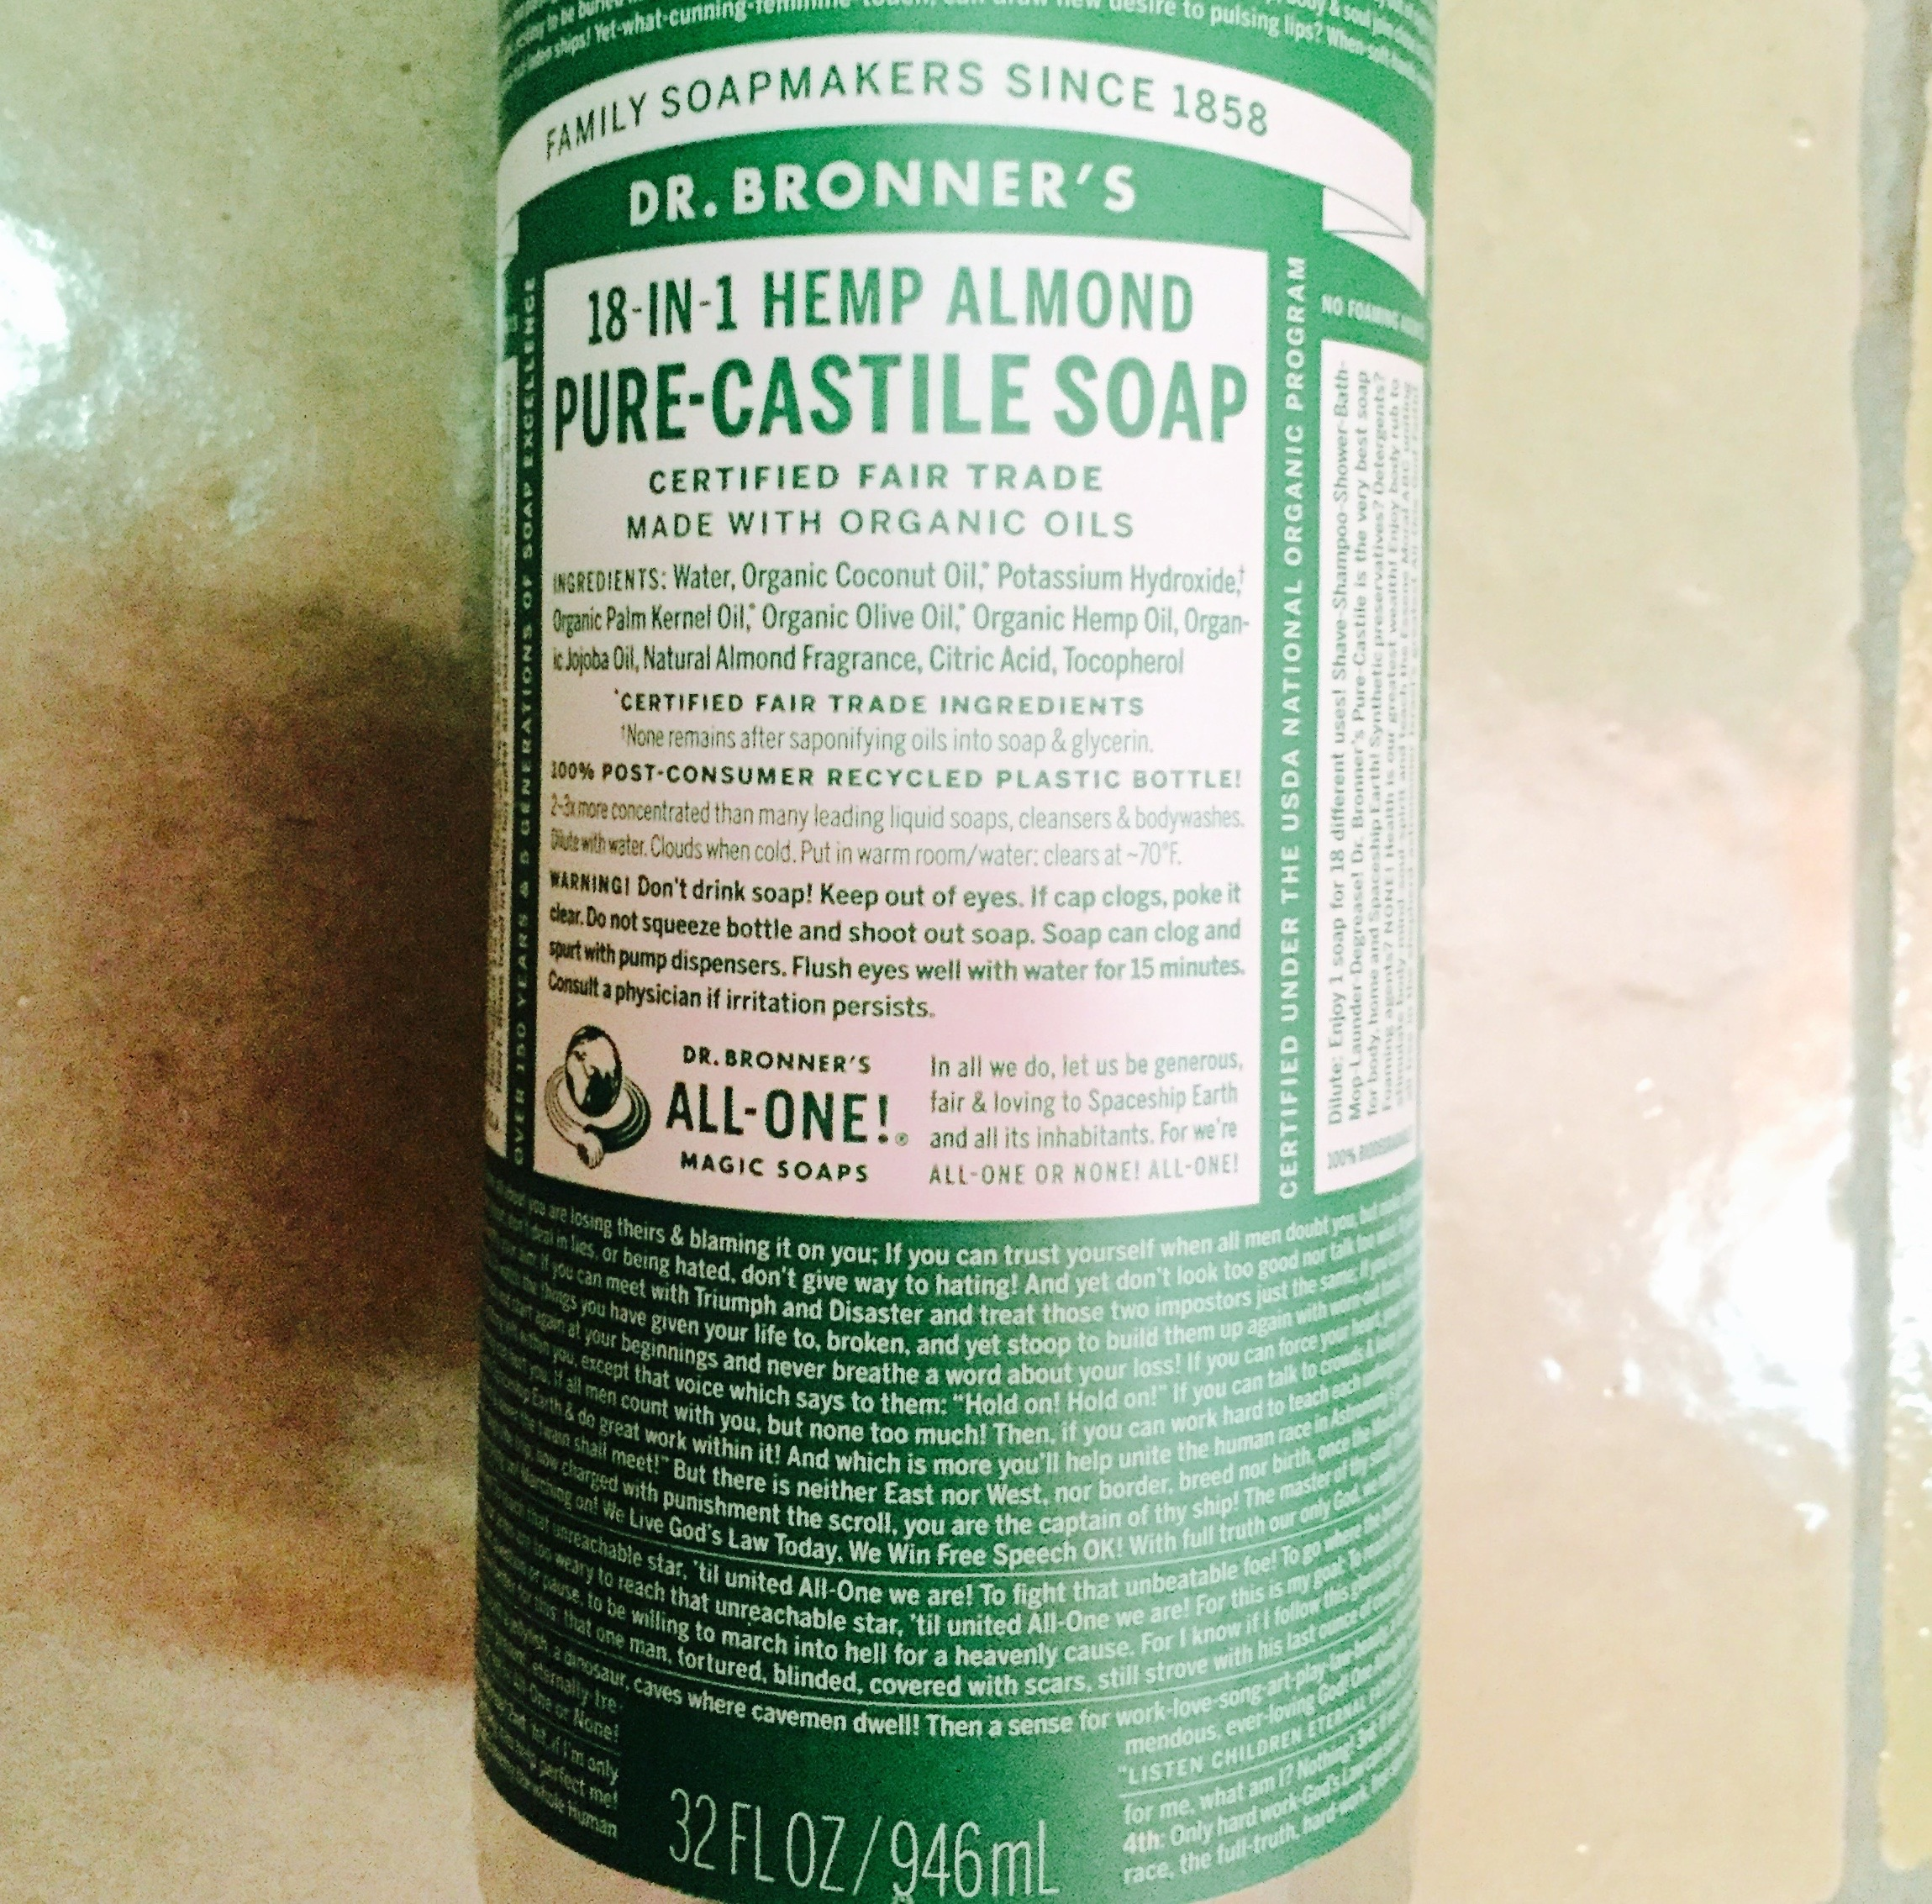 4. Castile soap - Works for all cleaning, body, laundry, dishes and more and doesn't harm the environment at all.